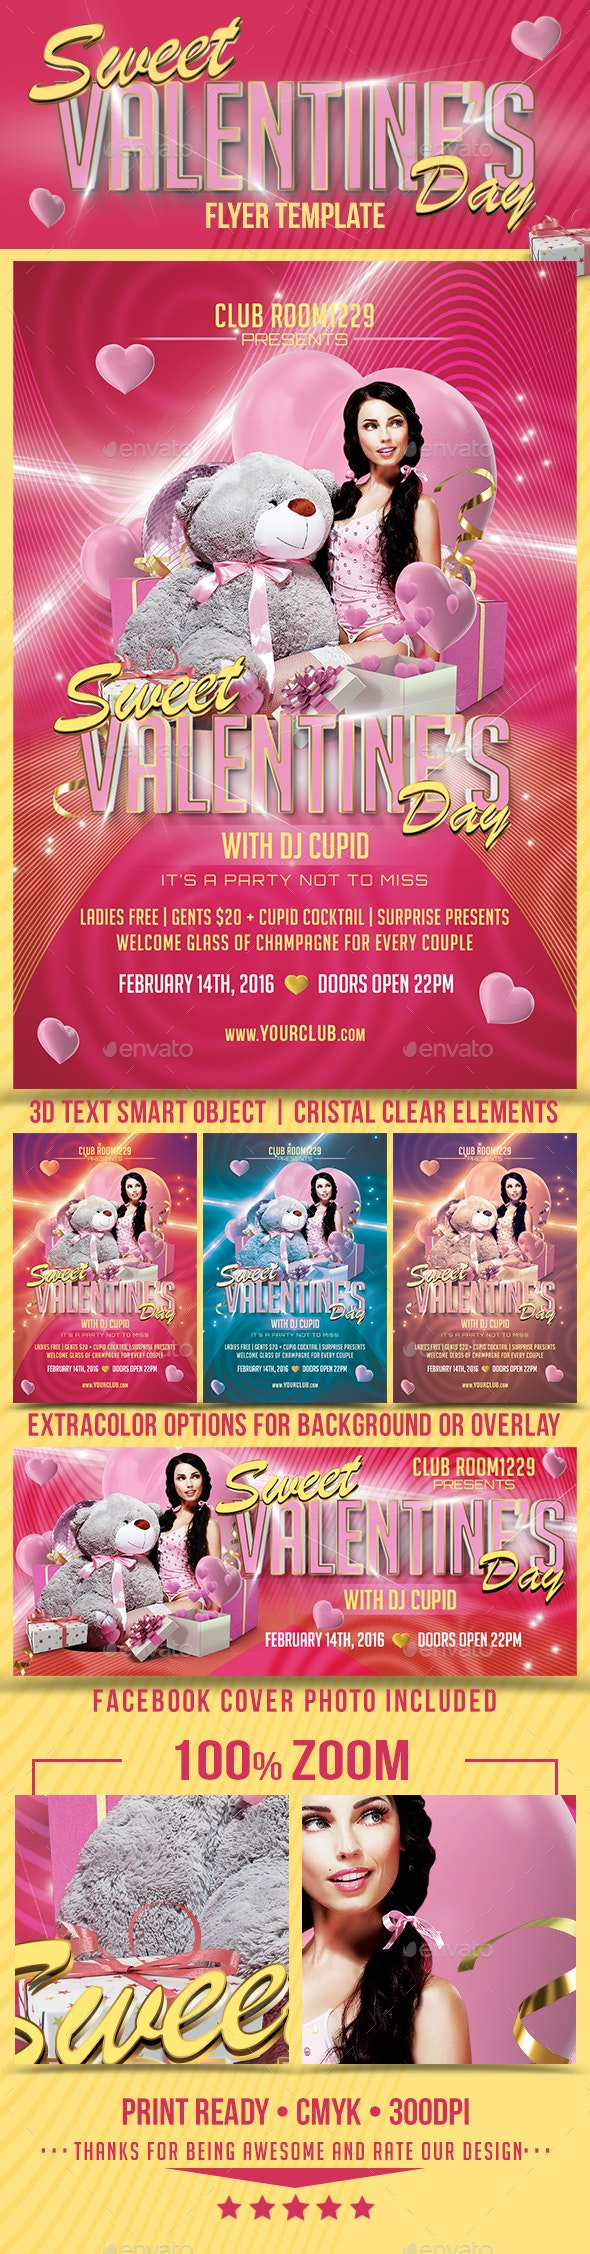 Sweet Valentine's Day Flyer Template & Facebook Cover - Events Flyers